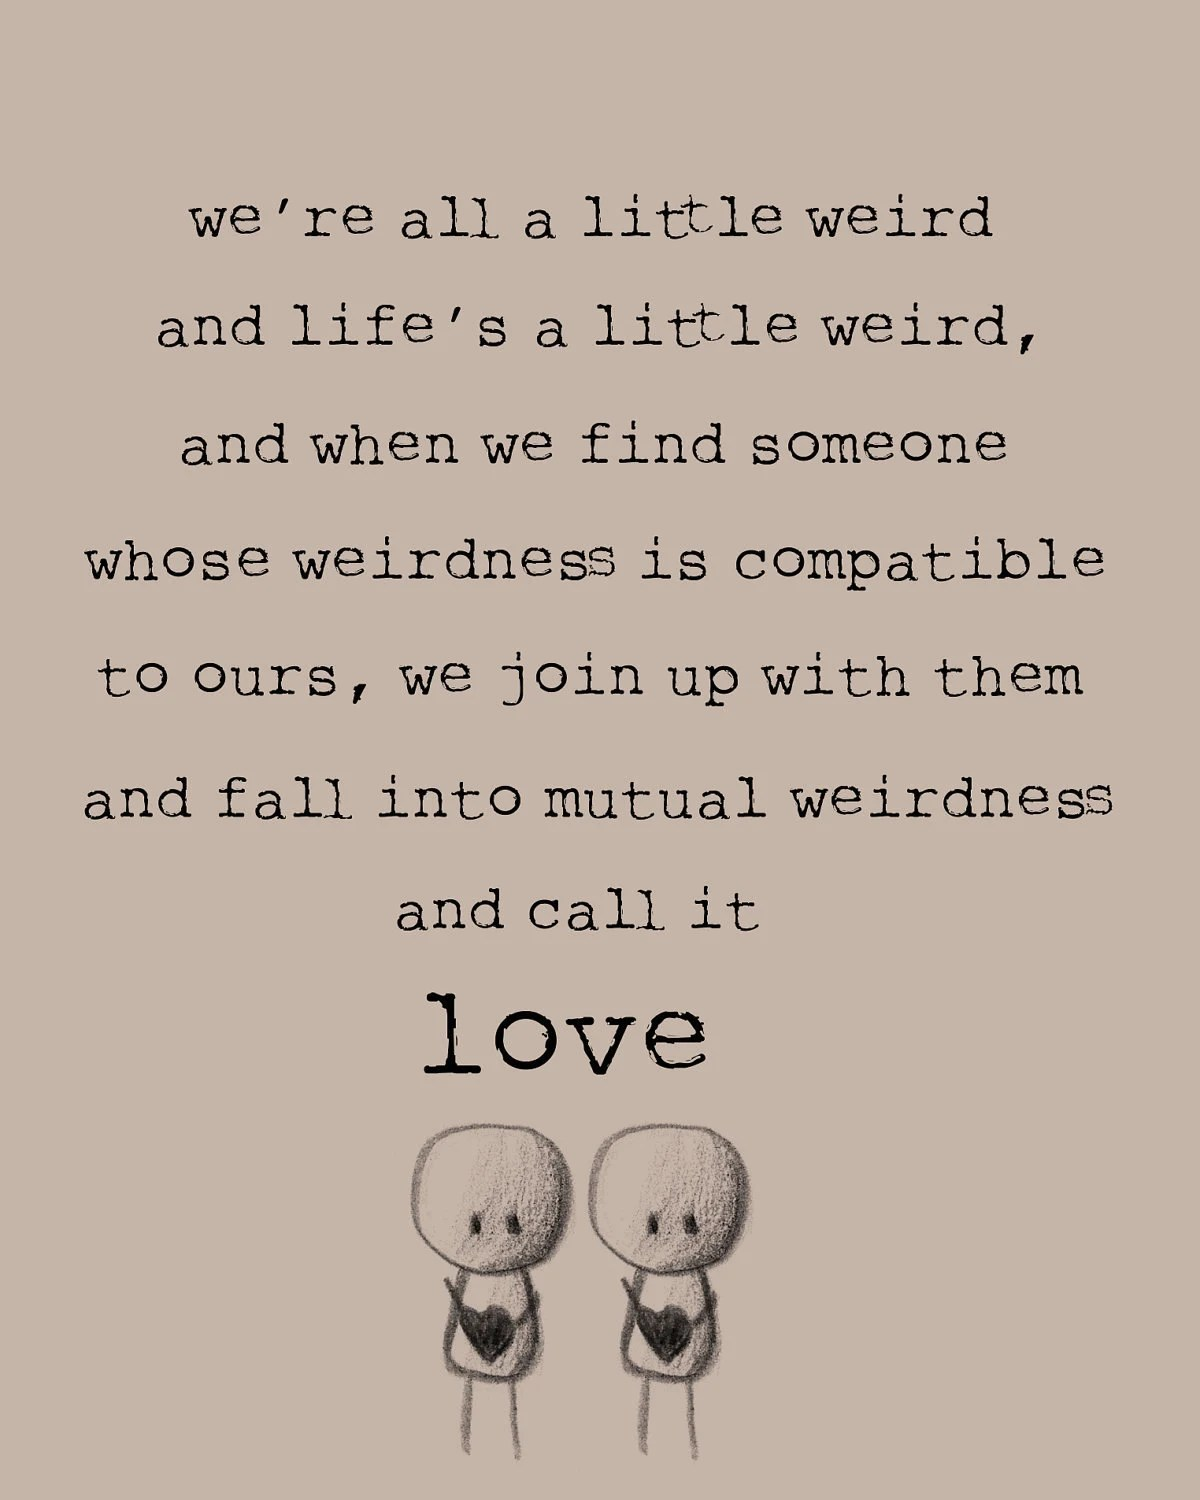 Dr. Seuss We're All a Little Weird